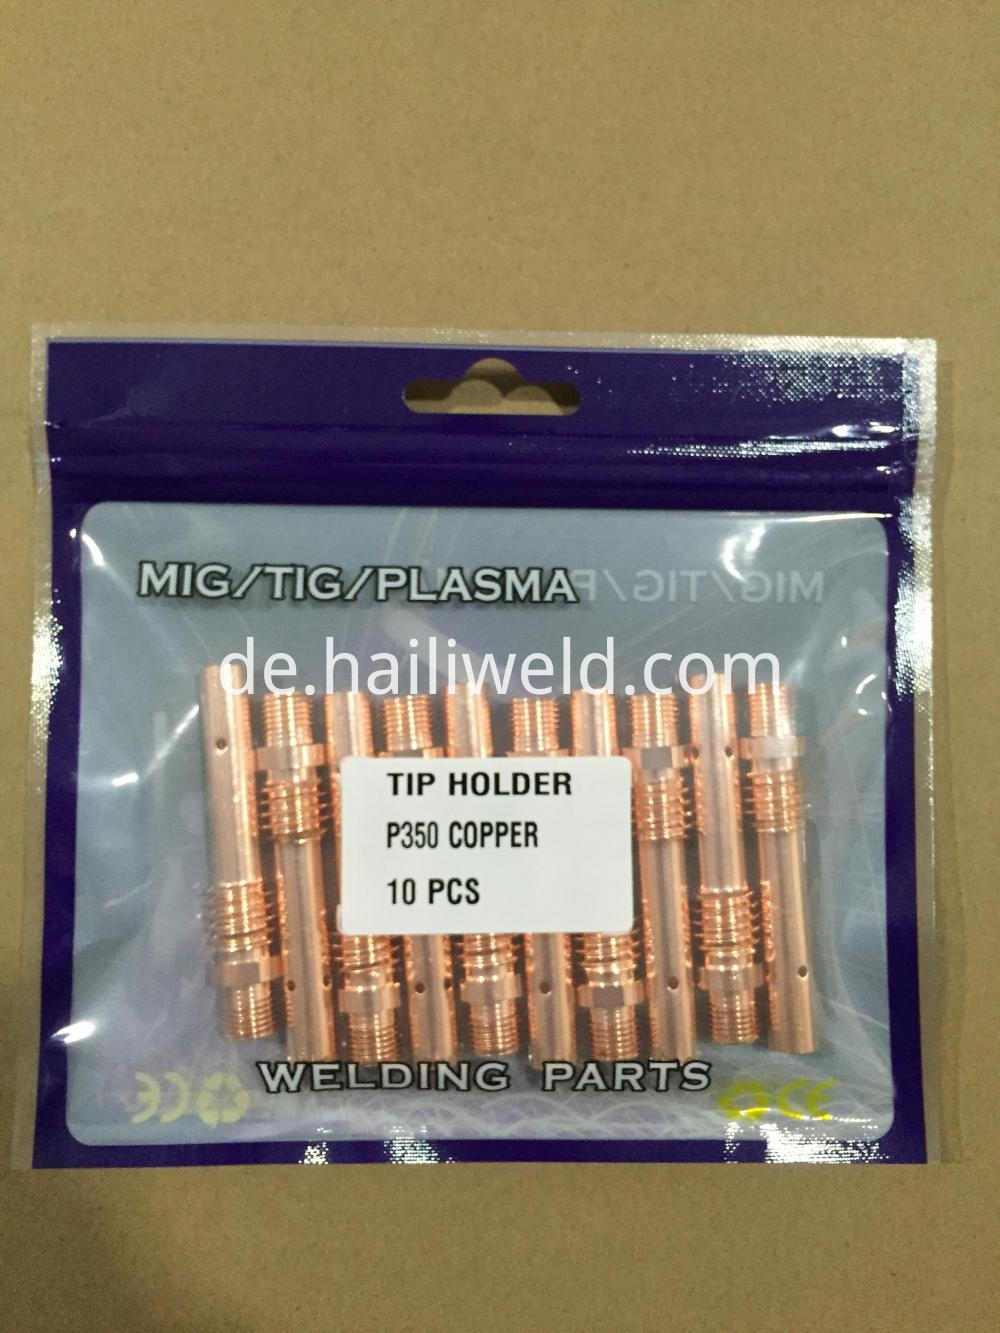 Tip Holder P350 Copper